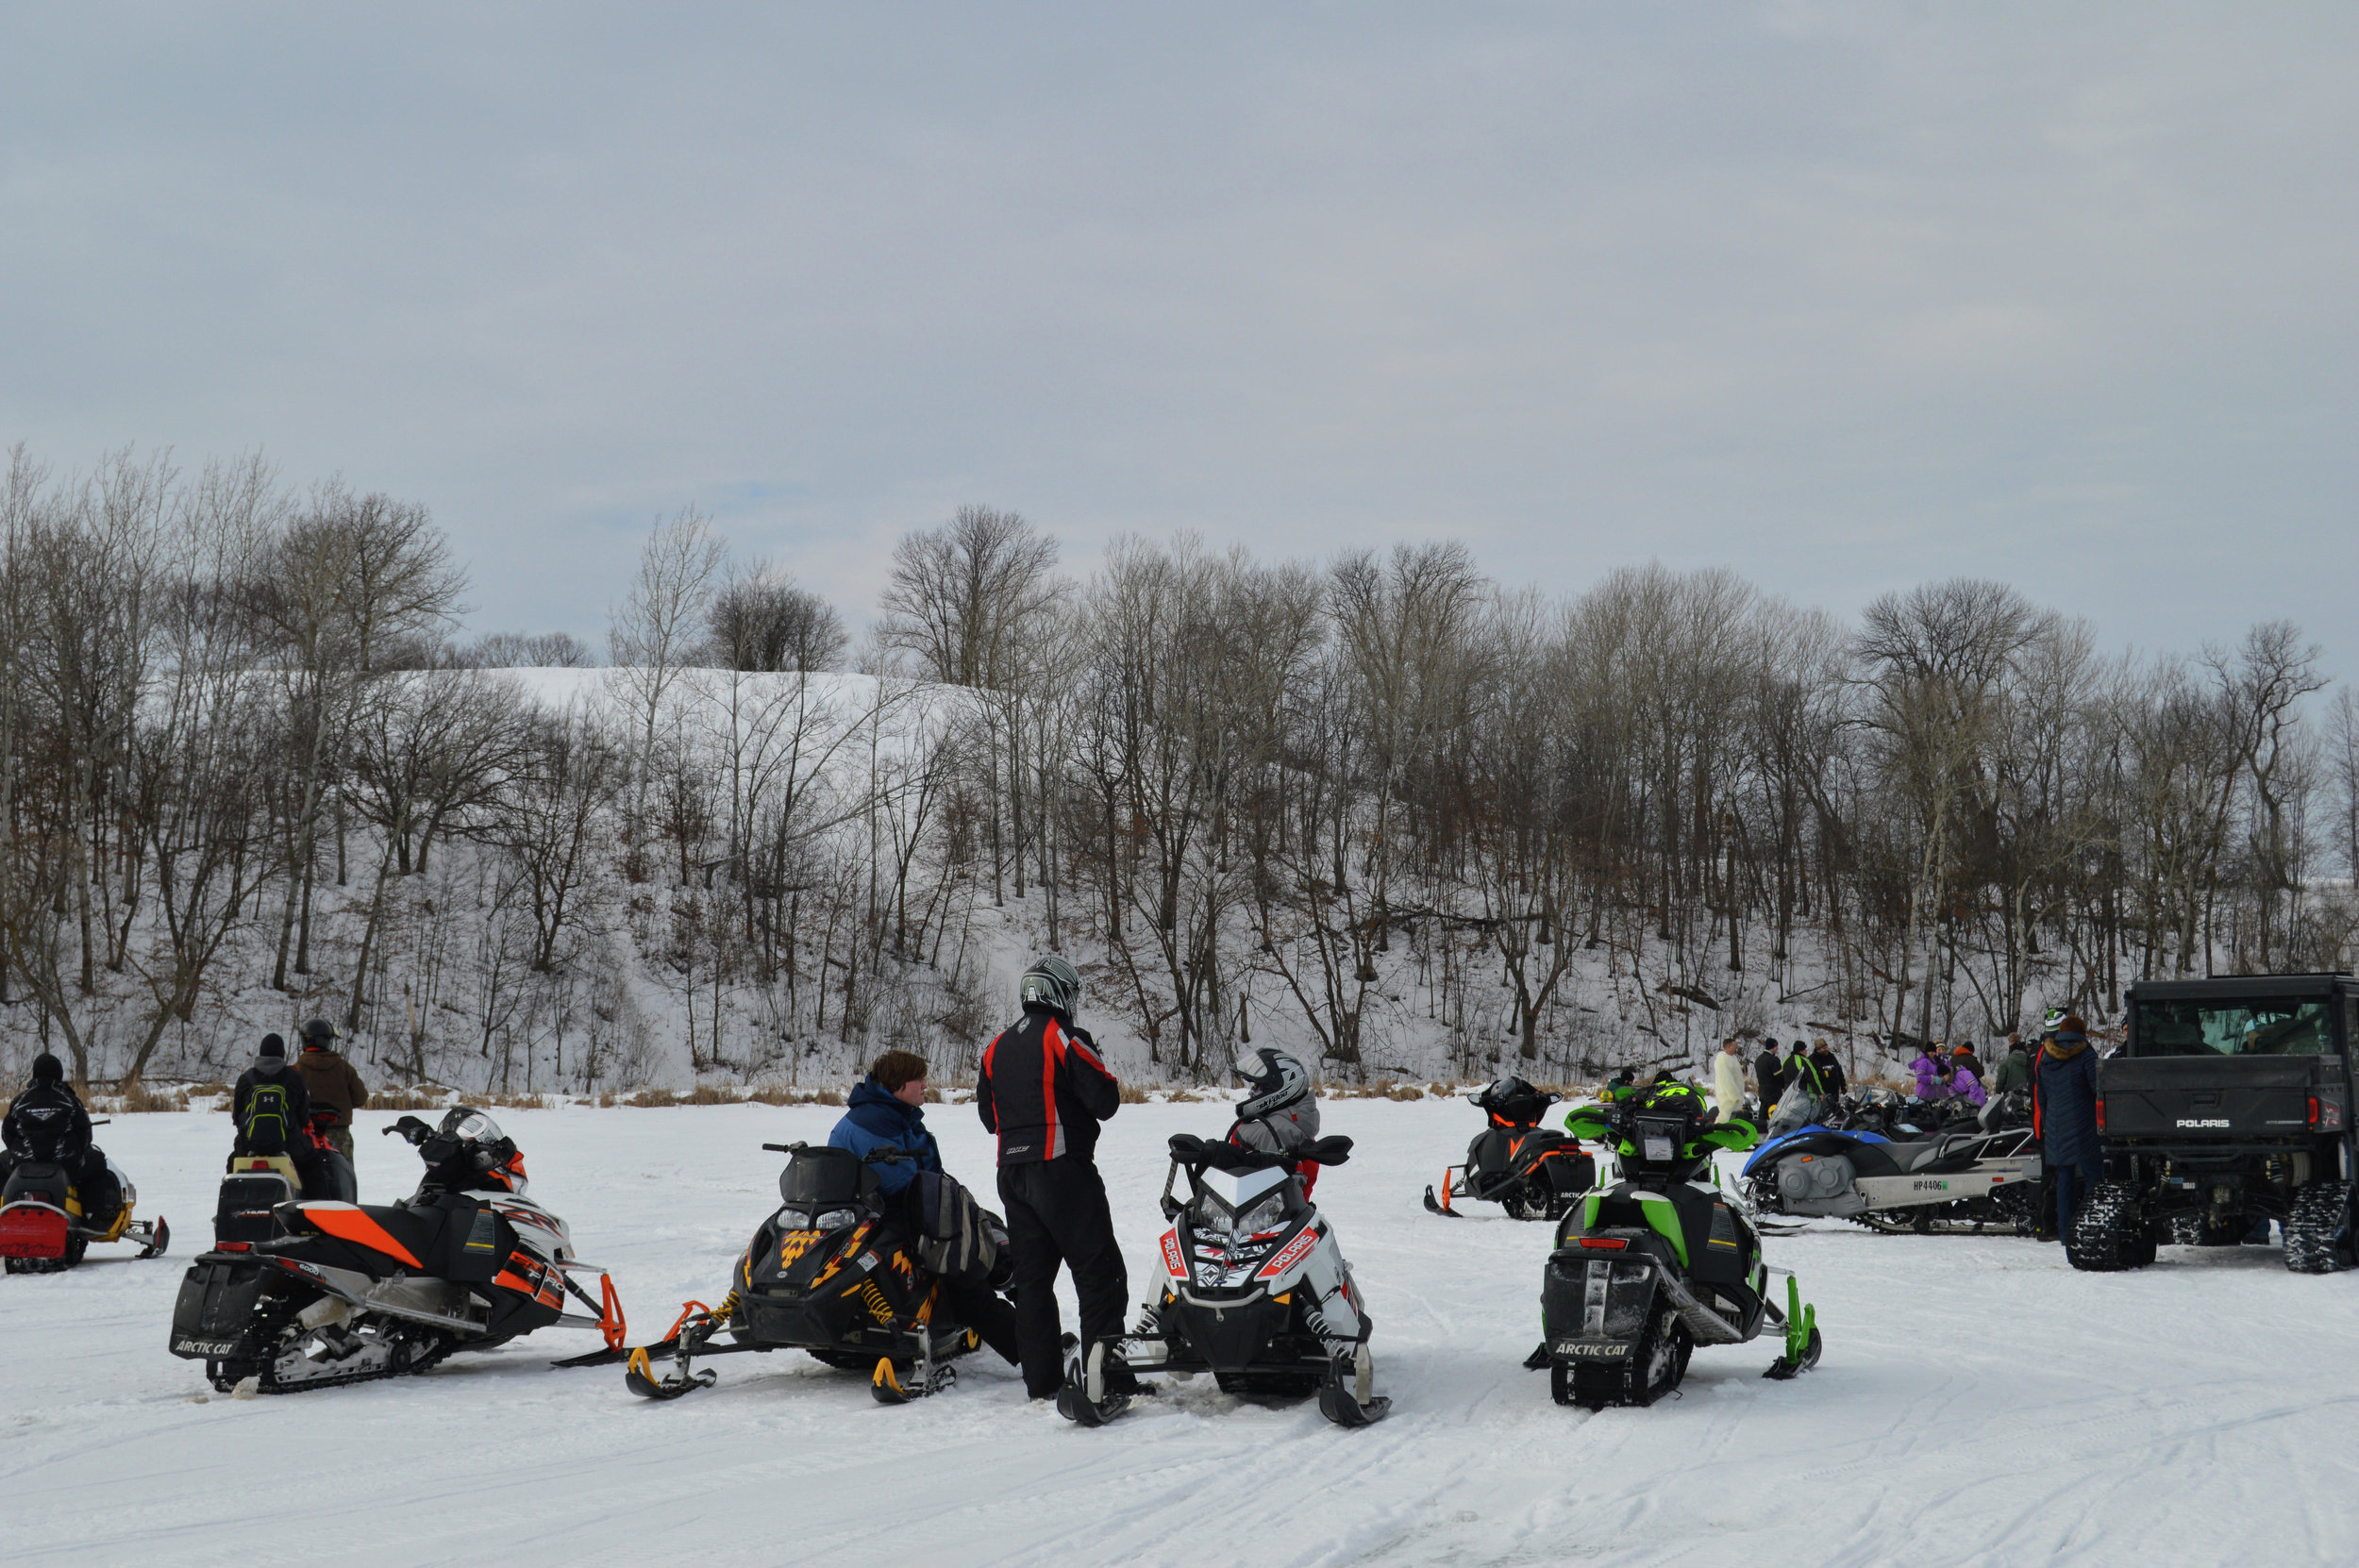 Looking up at the steep slope of Nylander Hill, the riders at the 2017 Old Timer's Run dared one anther to test their skills and their sleds on the run to the top. Event organizer Bill Livdahl says one of the main challenges is keeping the older sleds running during the 39-mile run. (Tribune file photo)